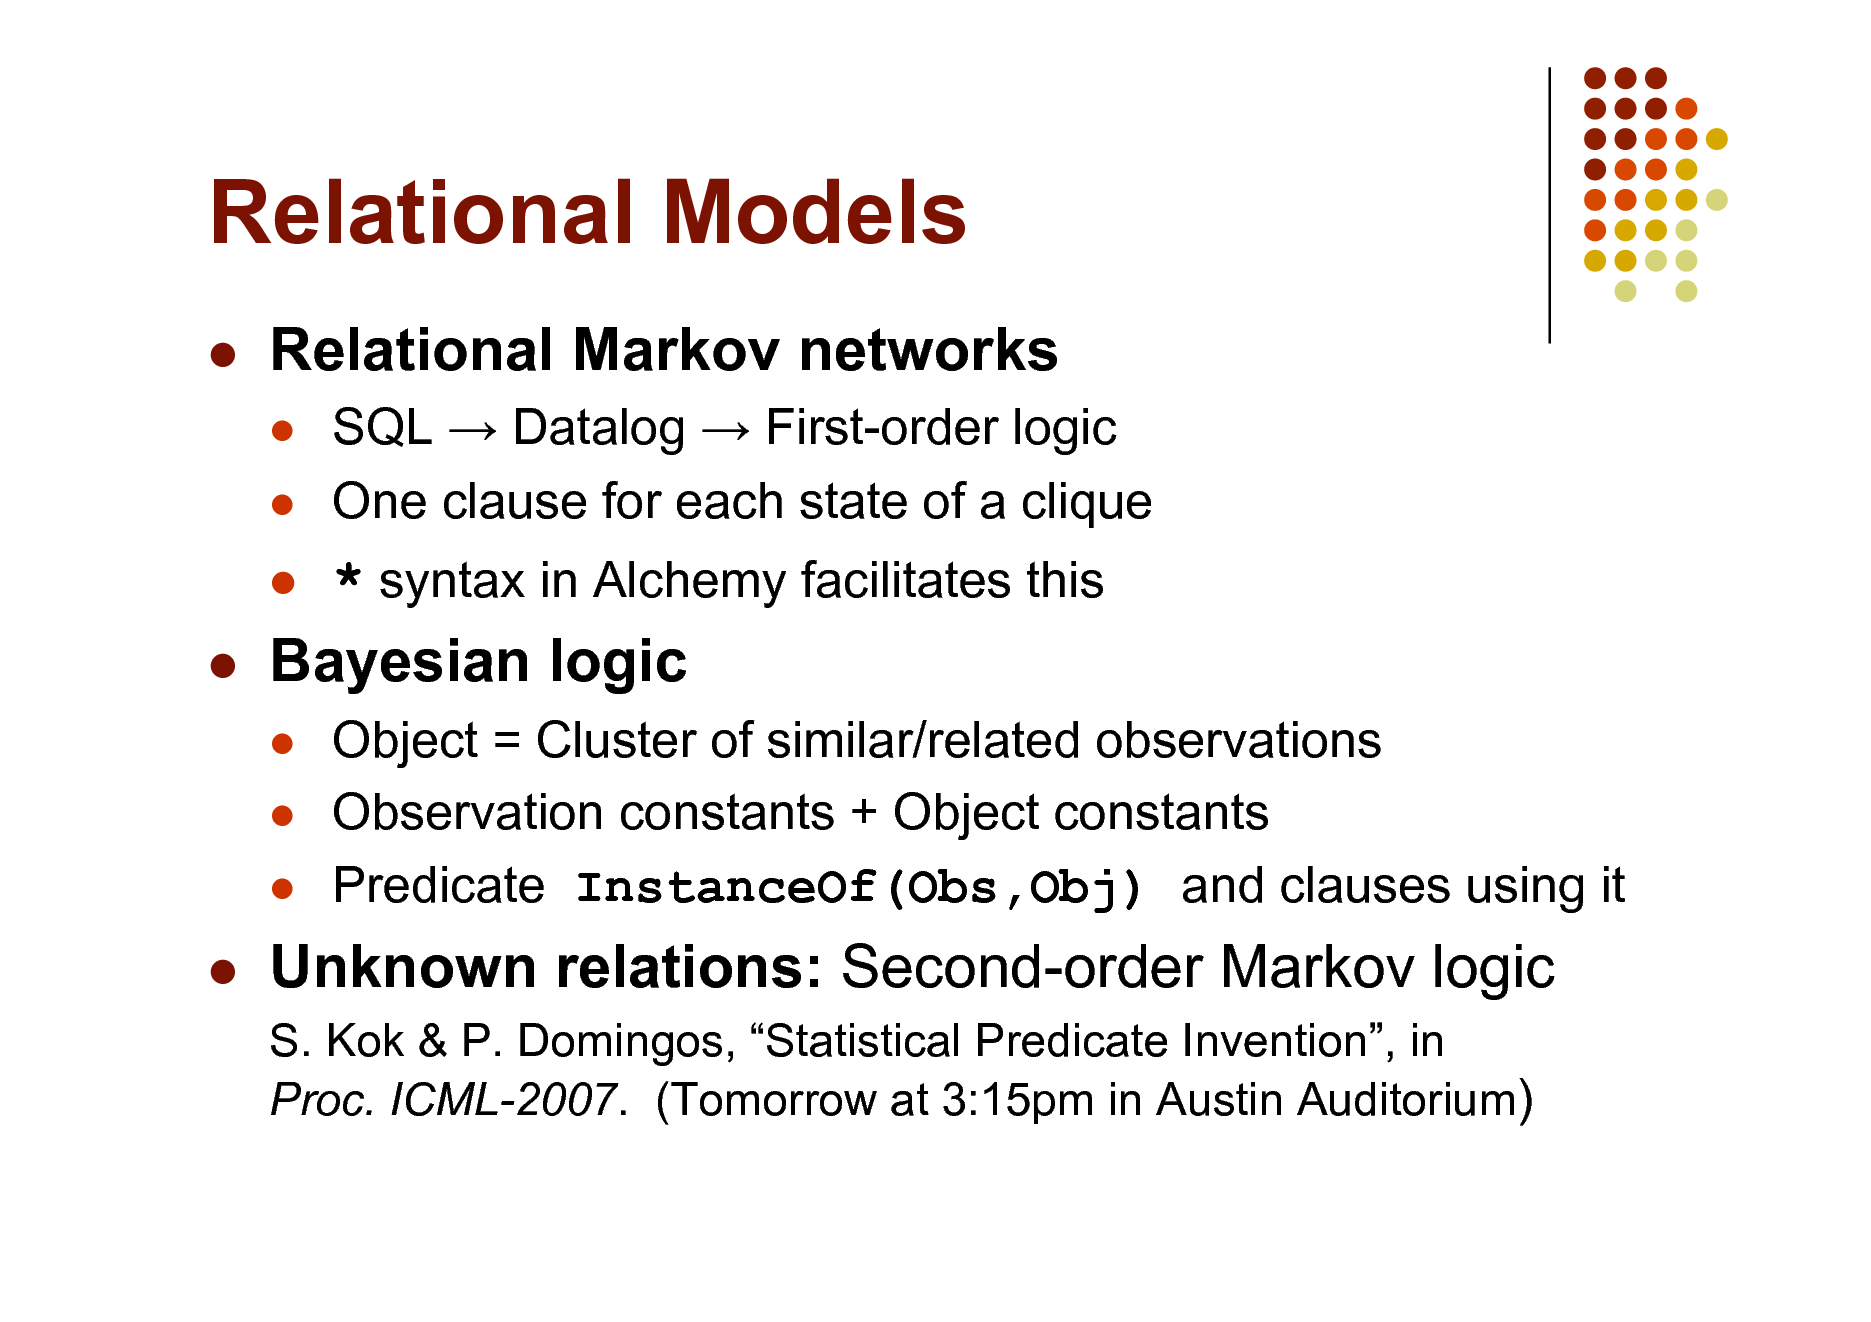 Slide: Relational Models   Relational Markov networks    SQL  Datalog  First-order logic One clause for each state of a clique    * syntax in Alchemy facilitates this Object = Cluster of similar/related observations Observation constants + Object constants Predicate InstanceOf(Obs,Obj) and clauses using it    Bayesian logic       Unknown relations: Second-order Markov logic S. Kok & P. Domingos, Statistical Predicate Invention, in Proc. ICML-2007. (Tomorrow at 3:15pm in Austin Auditorium)